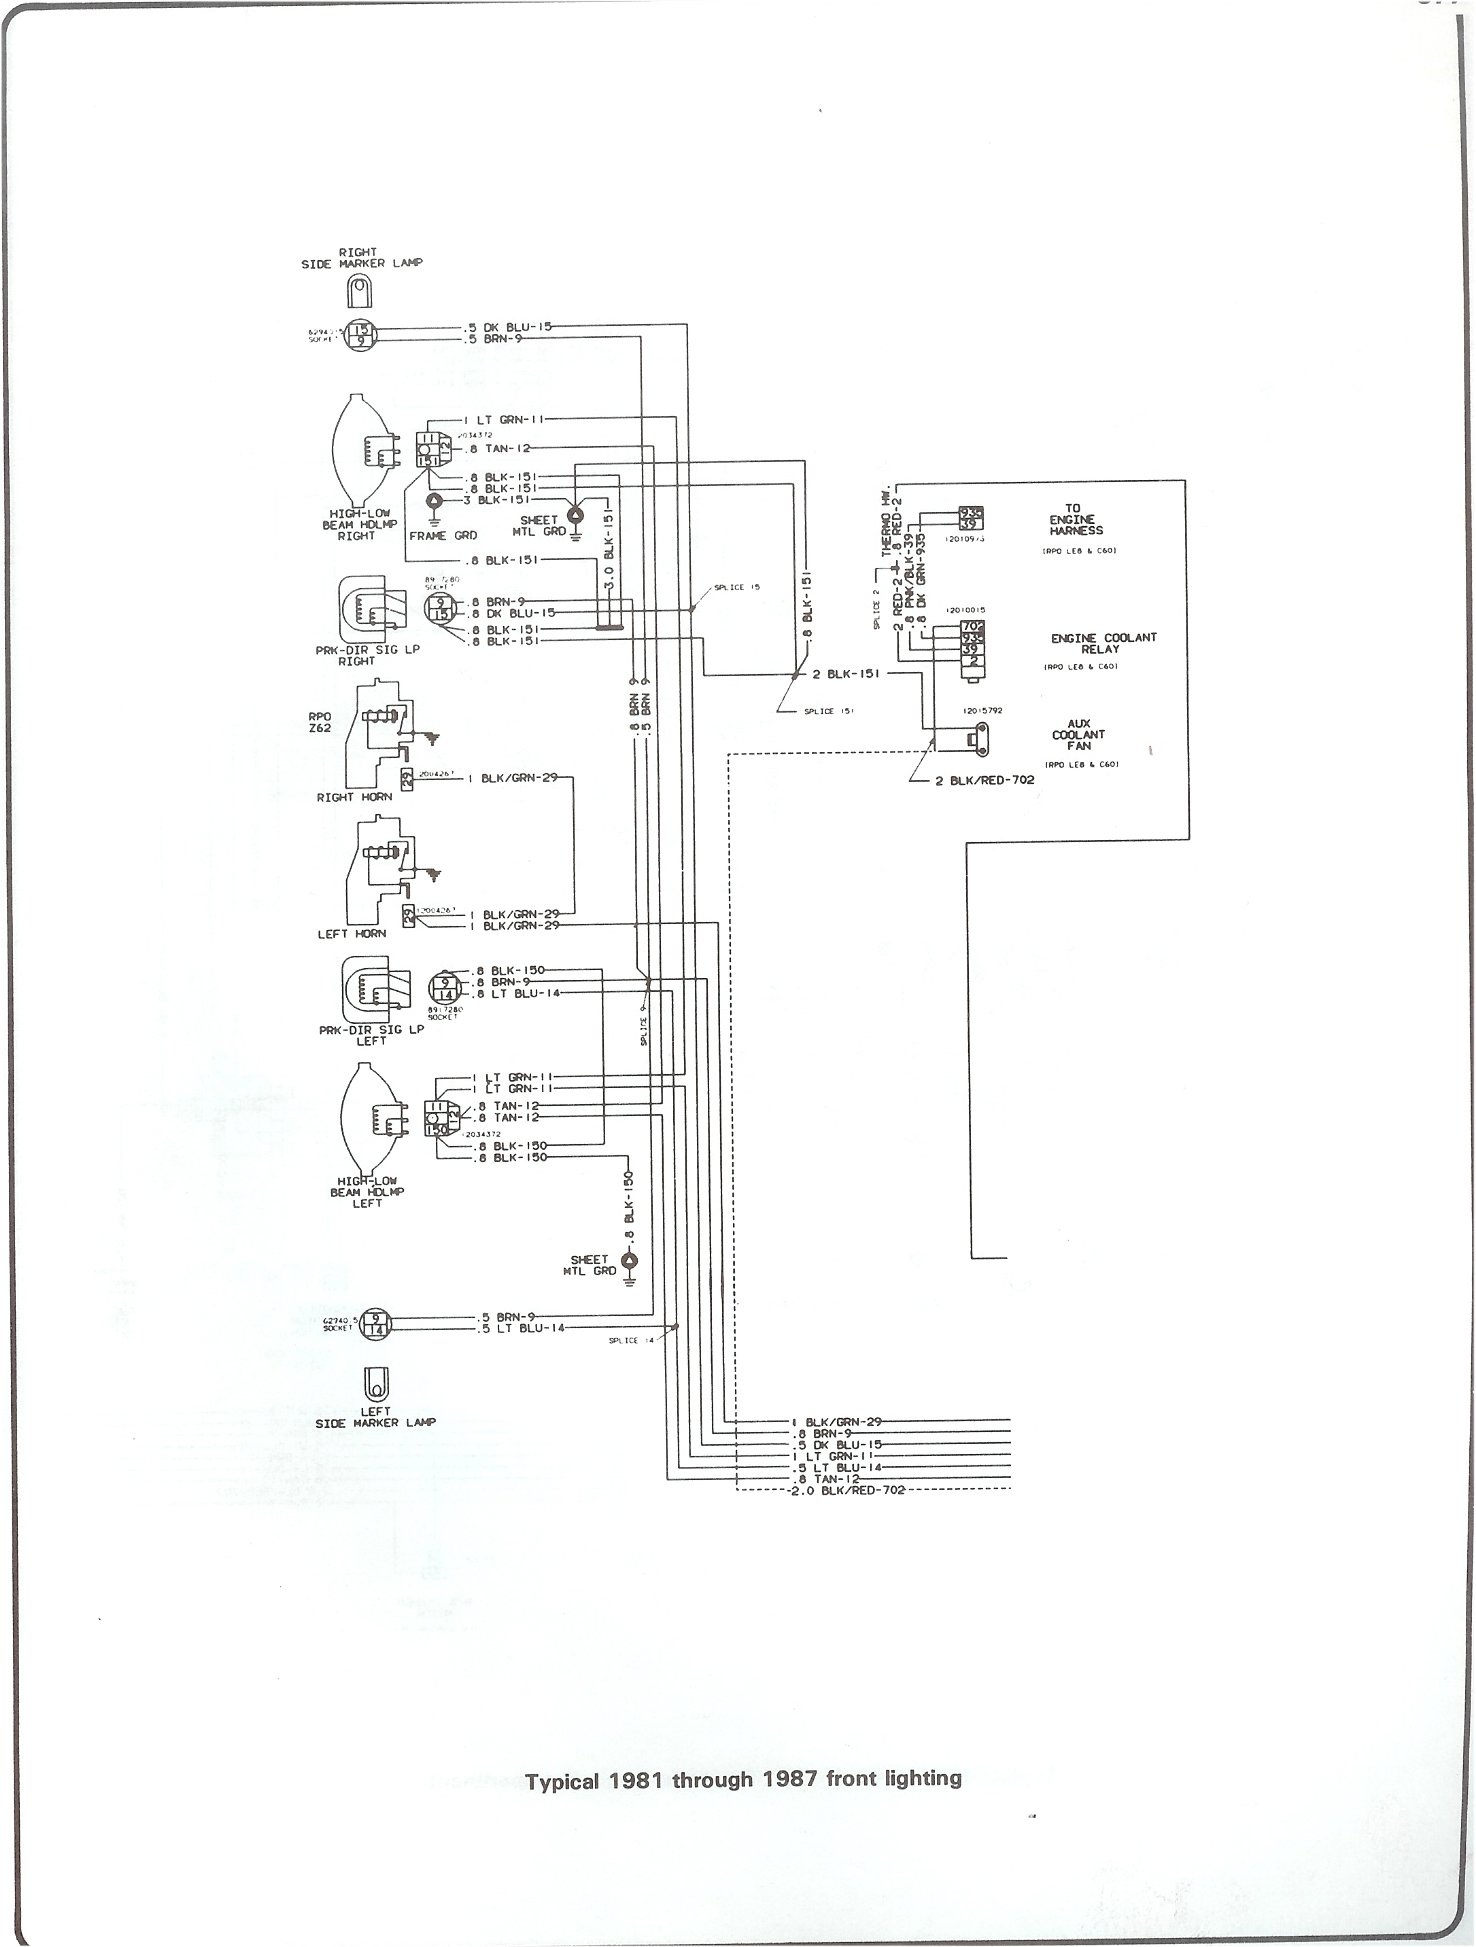 Surprising 1980 Gmc Wiring Wiring Diagram Wiring Cloud Nuvitbieswglorg